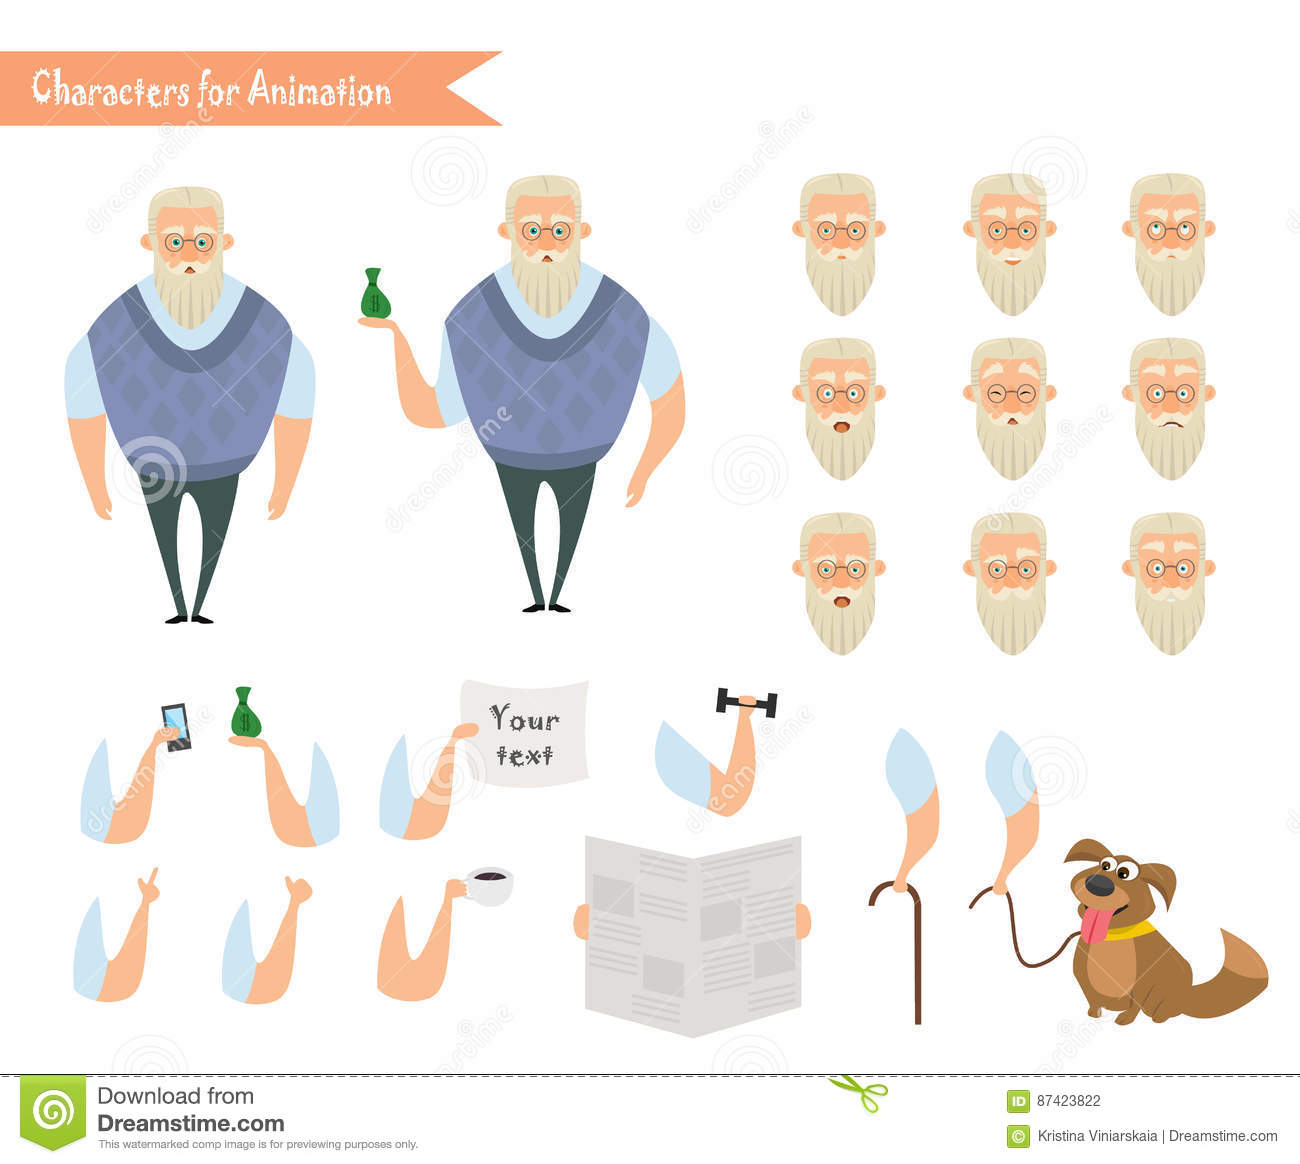 hight resolution of grandfather character for scenes parts of body template for animation funny old man cartoon emoji face icons